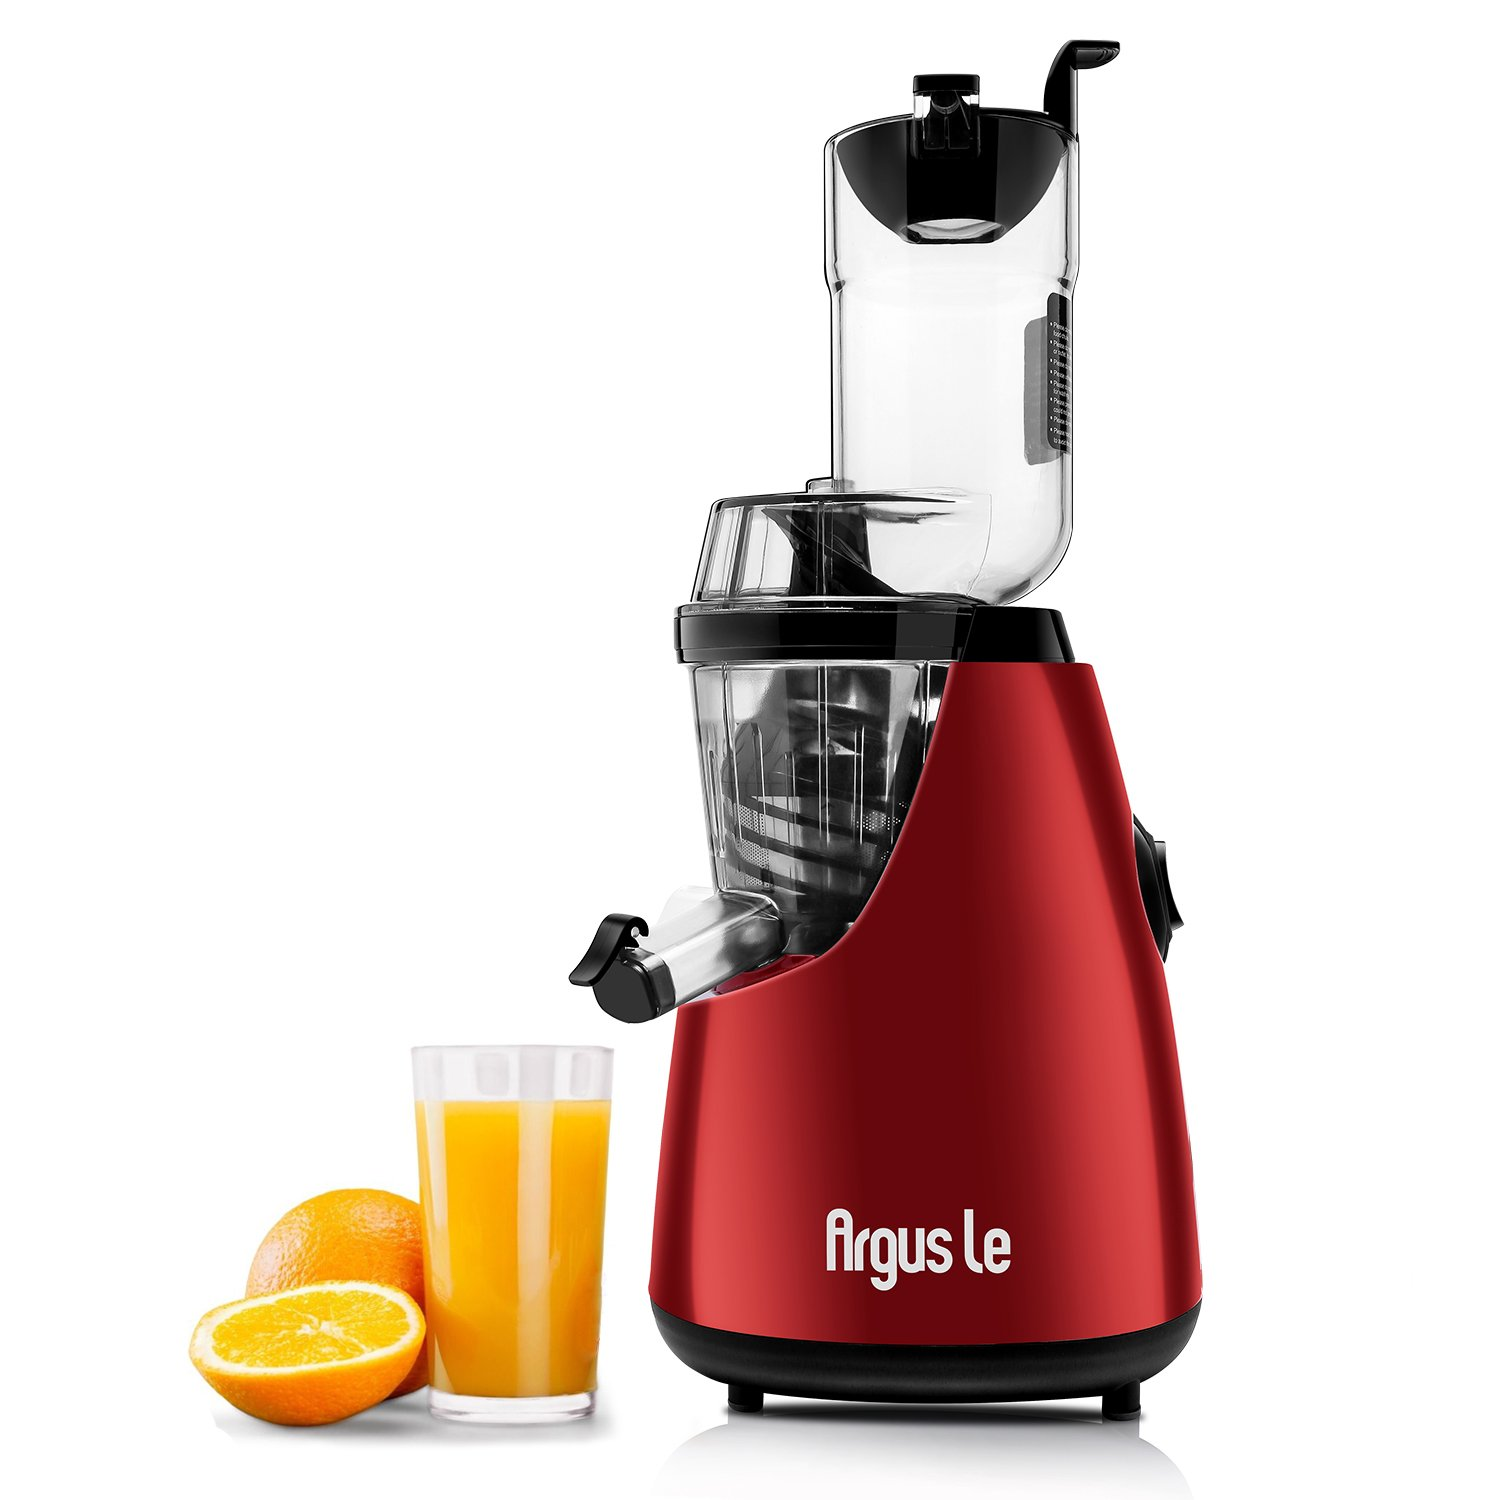 Slow Juicer Black Friday Deals : Save Big on Argus Slow Juicer - Just $99.99! - Freebies2Deals